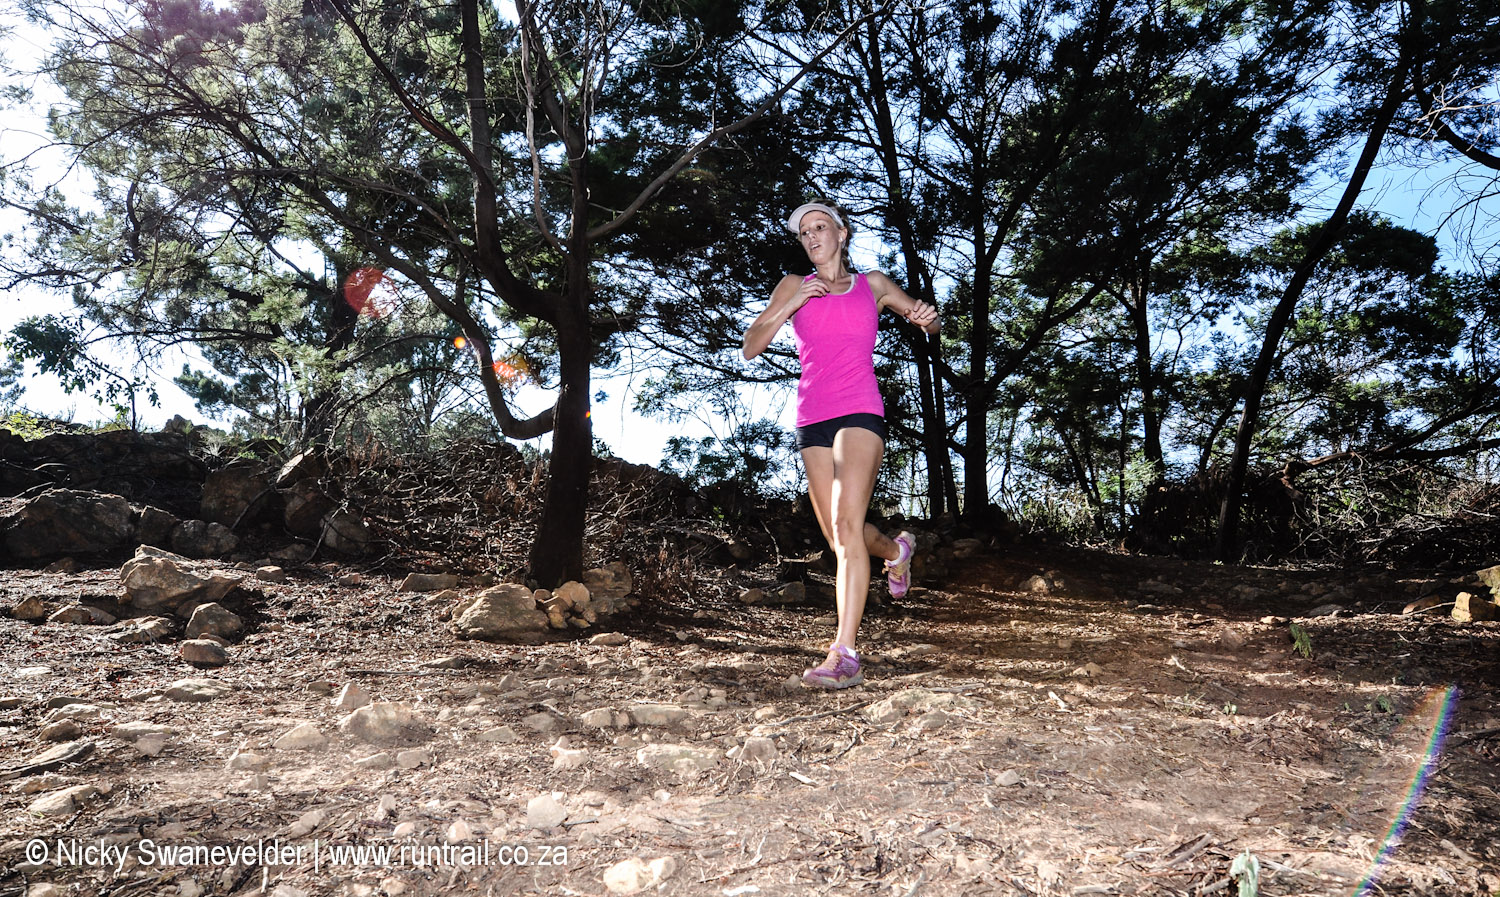 Some Things Every Trail Runner Should Know | Run Trail